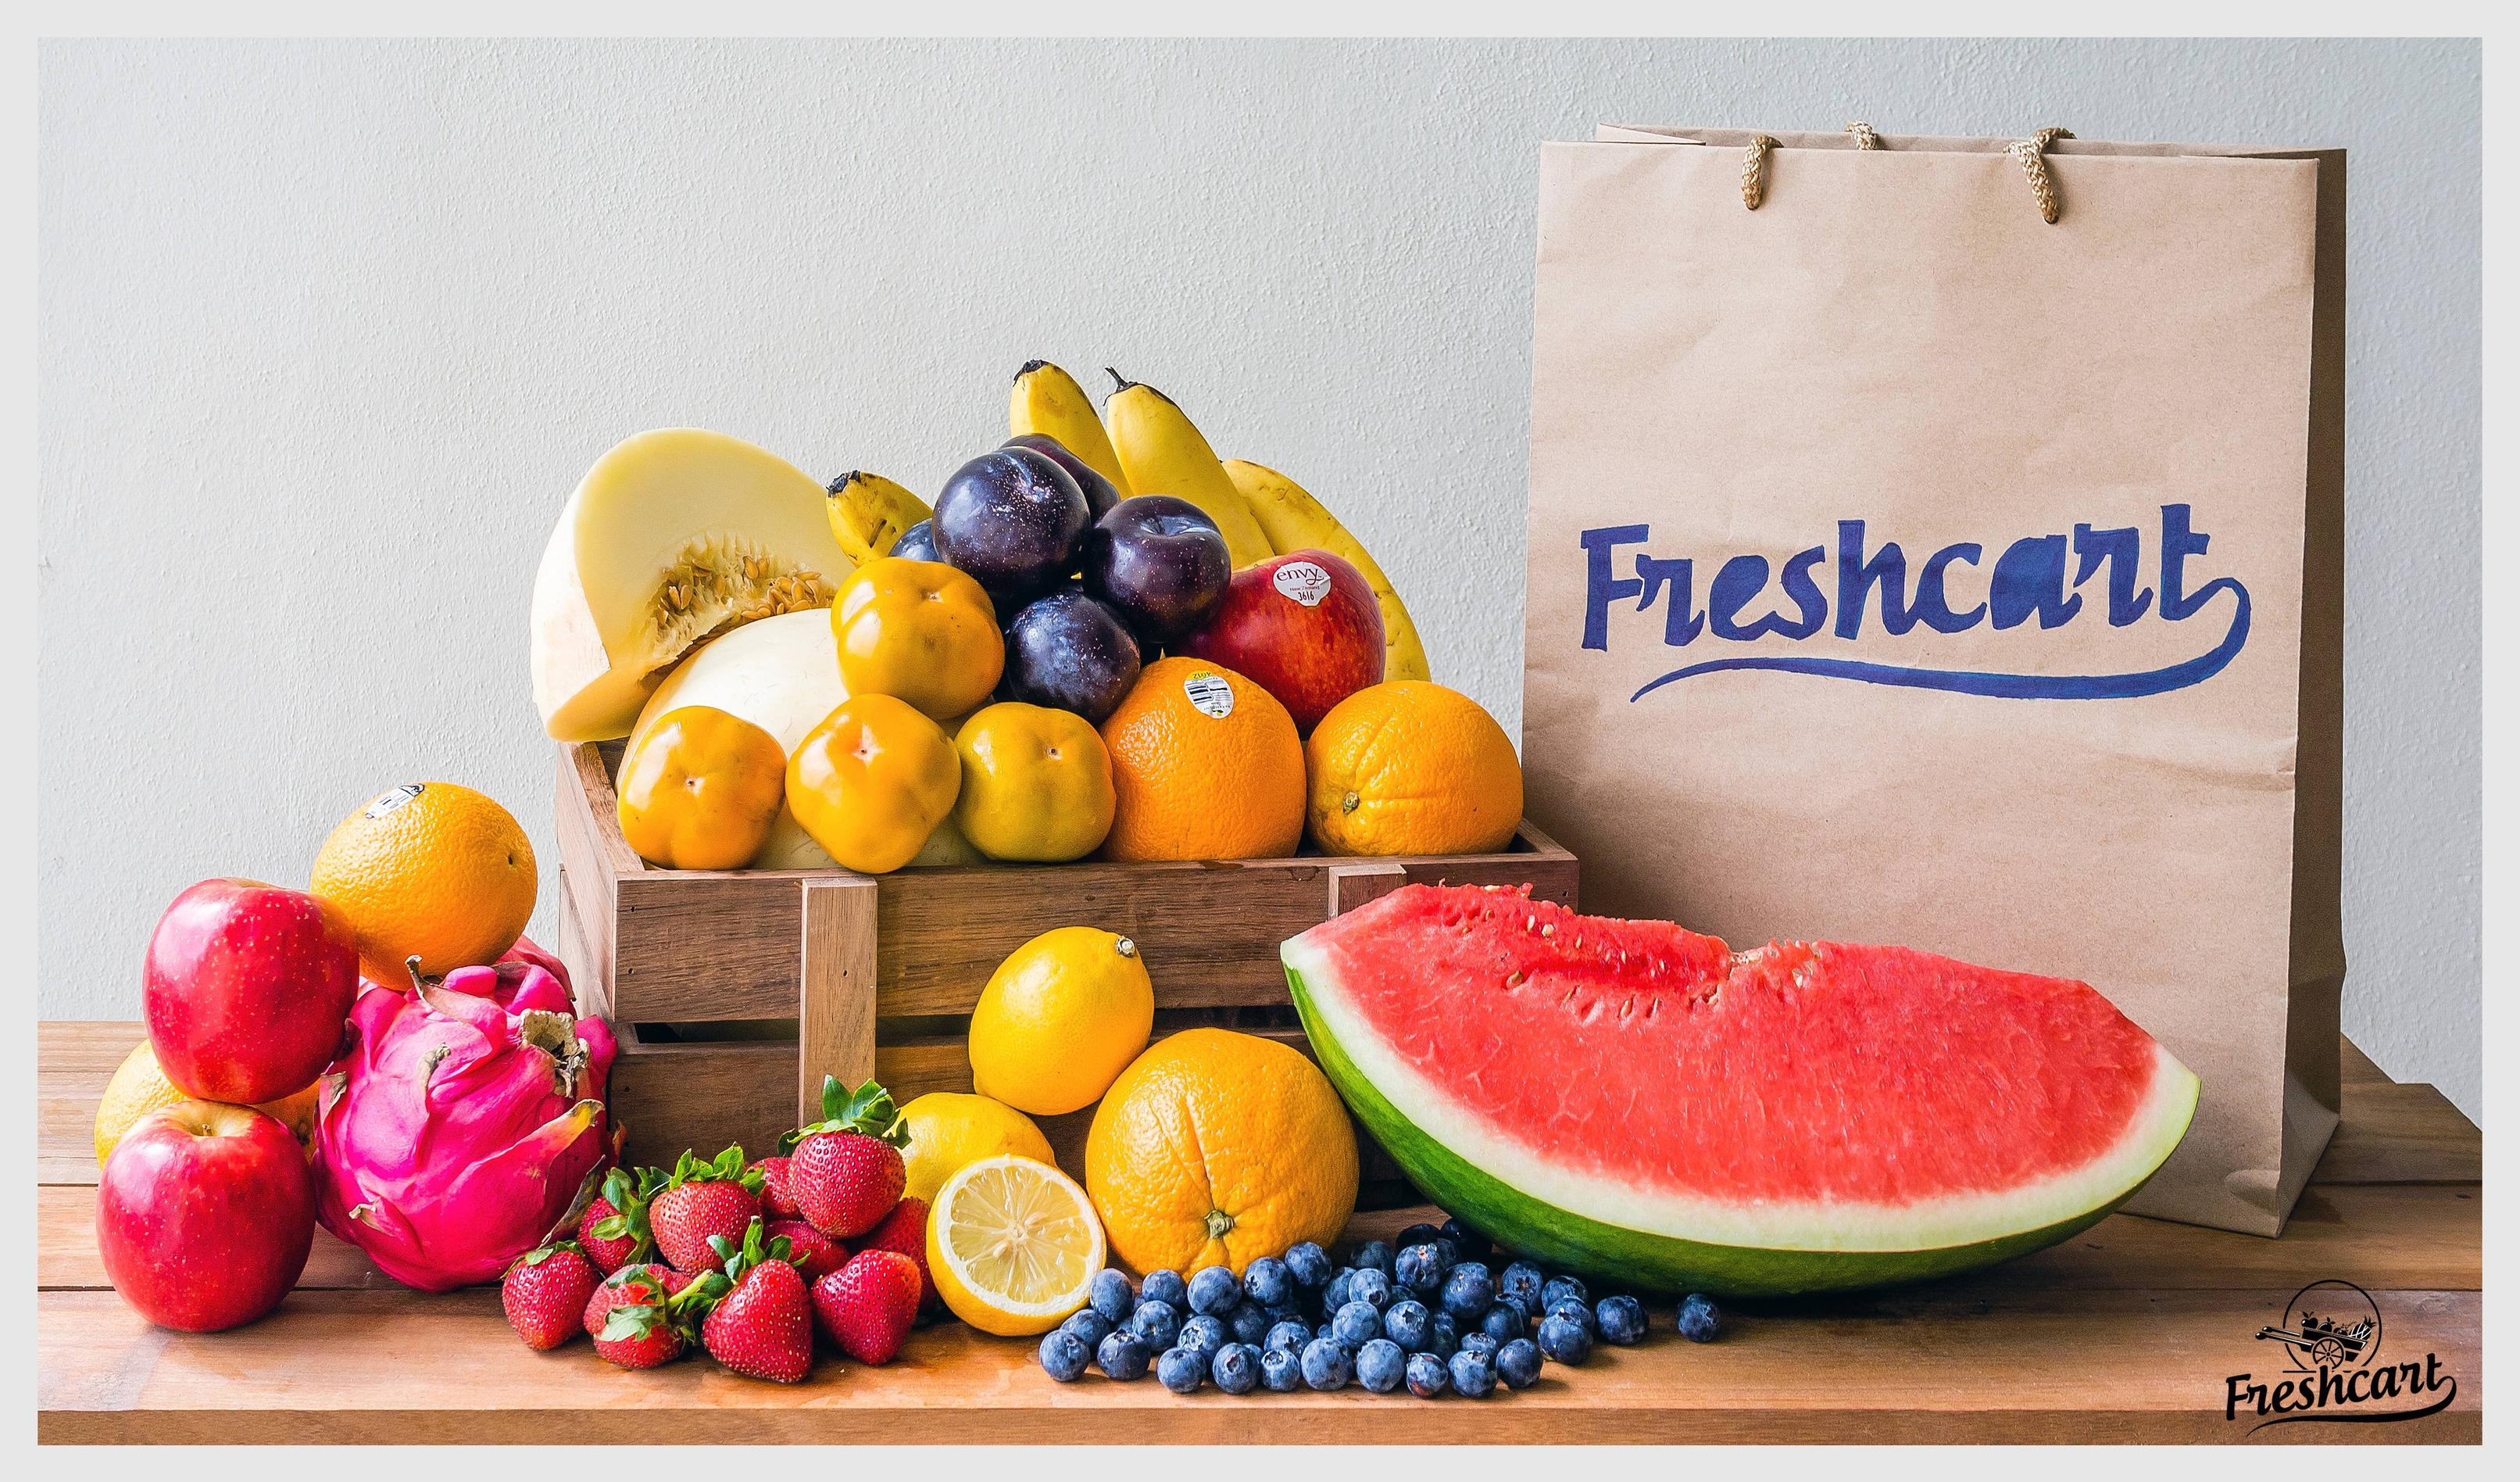 Freshcart will deliver fresh produce to your home!